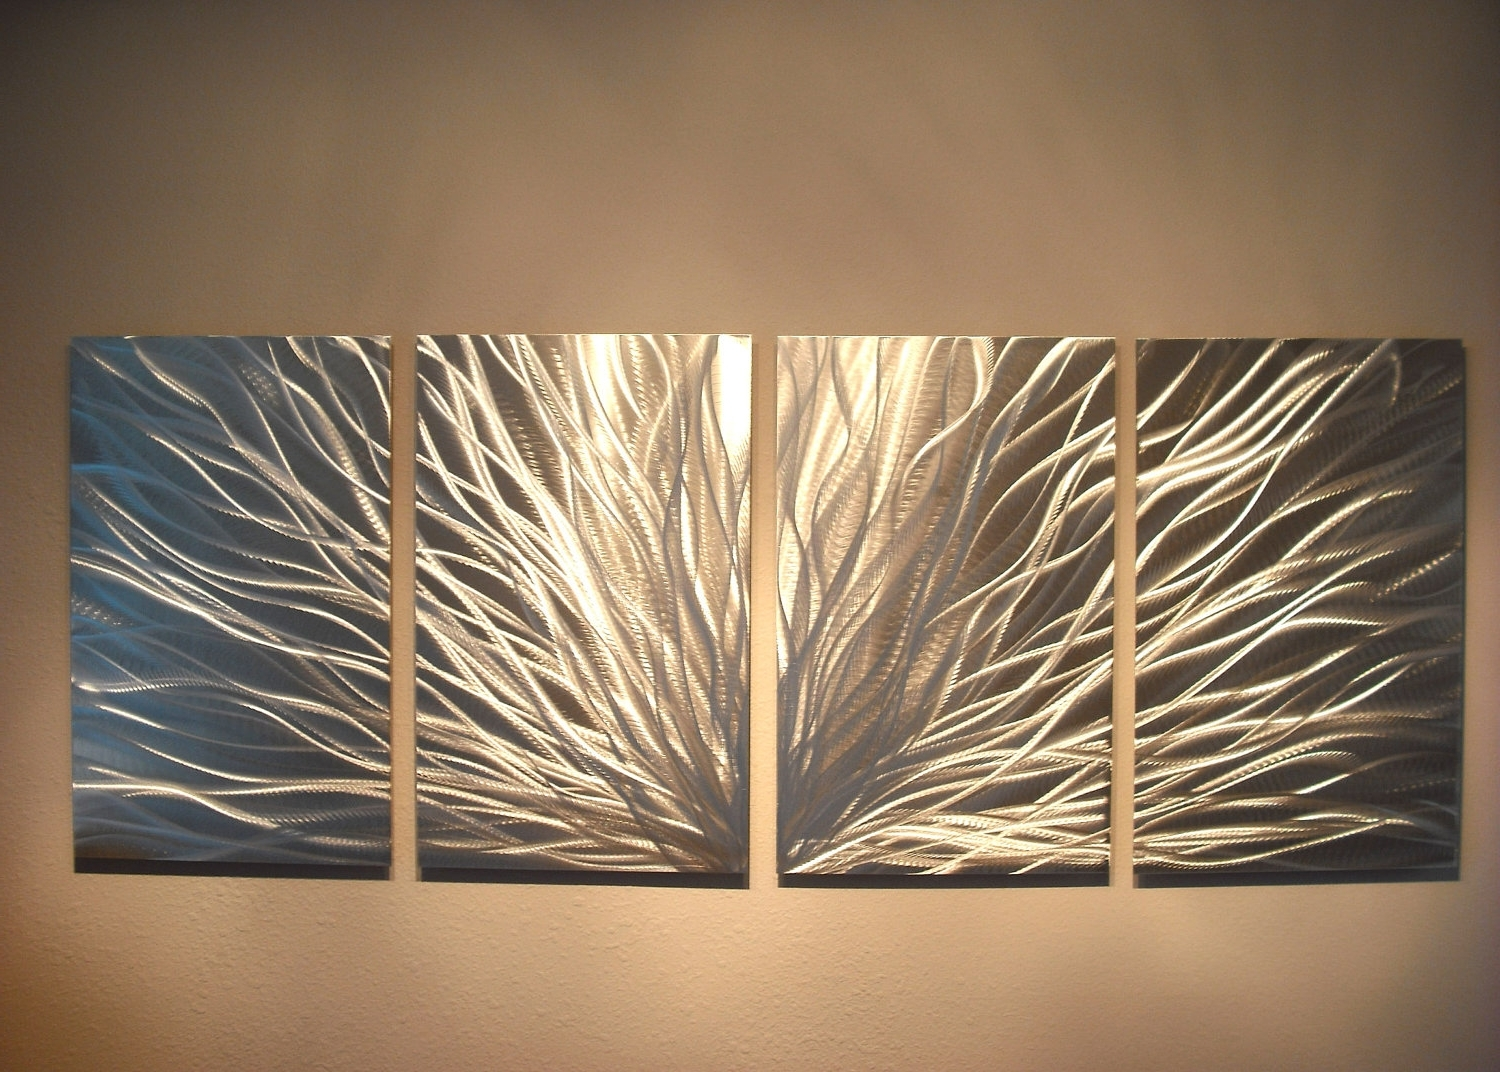 Radiance – Abstract Metal Wall Art Contemporary Modern Decor On Storenvy Inside Most Current Modern Wall Art (View 14 of 15)